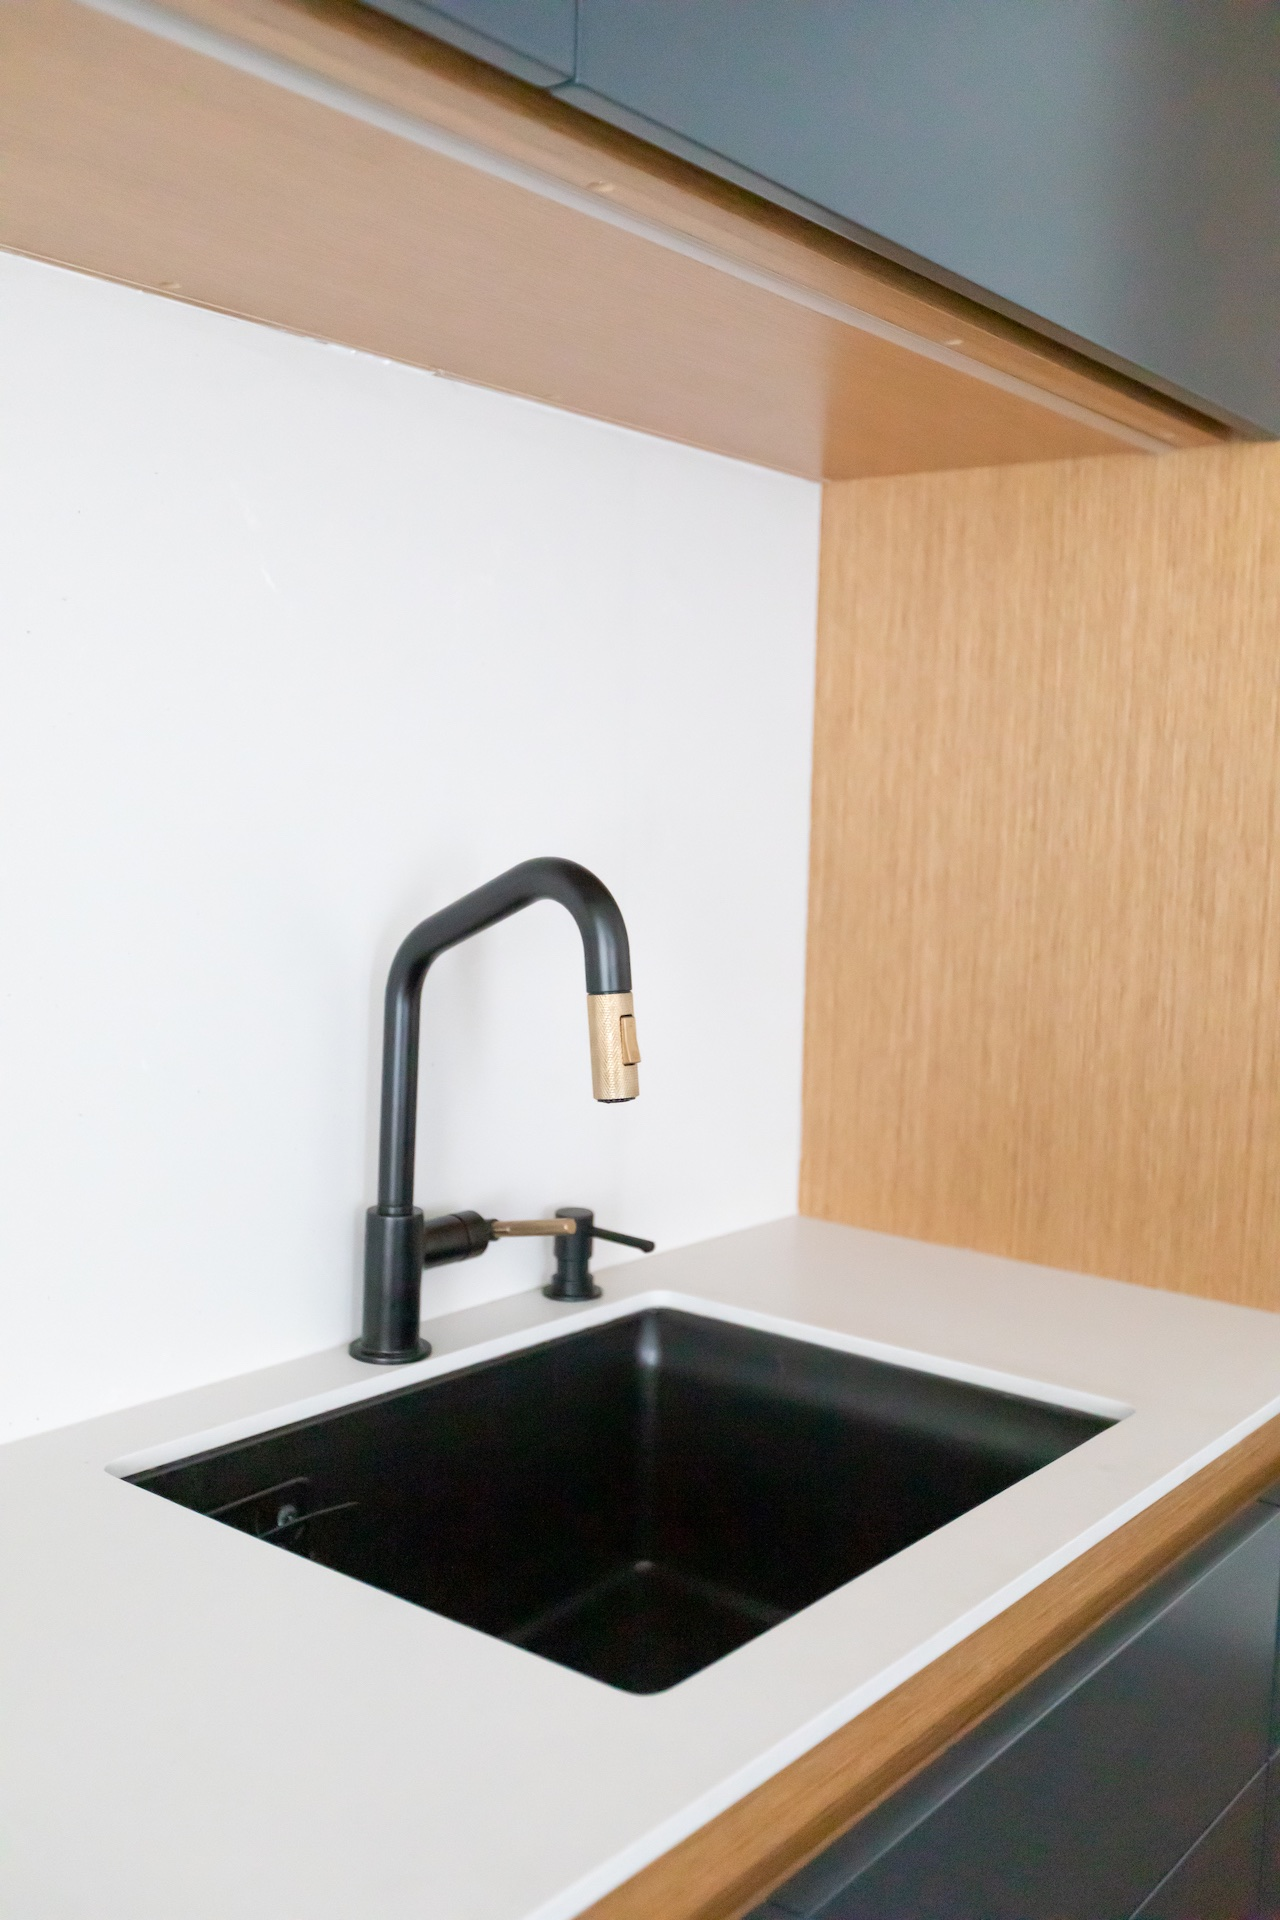 Back sink and black faucet